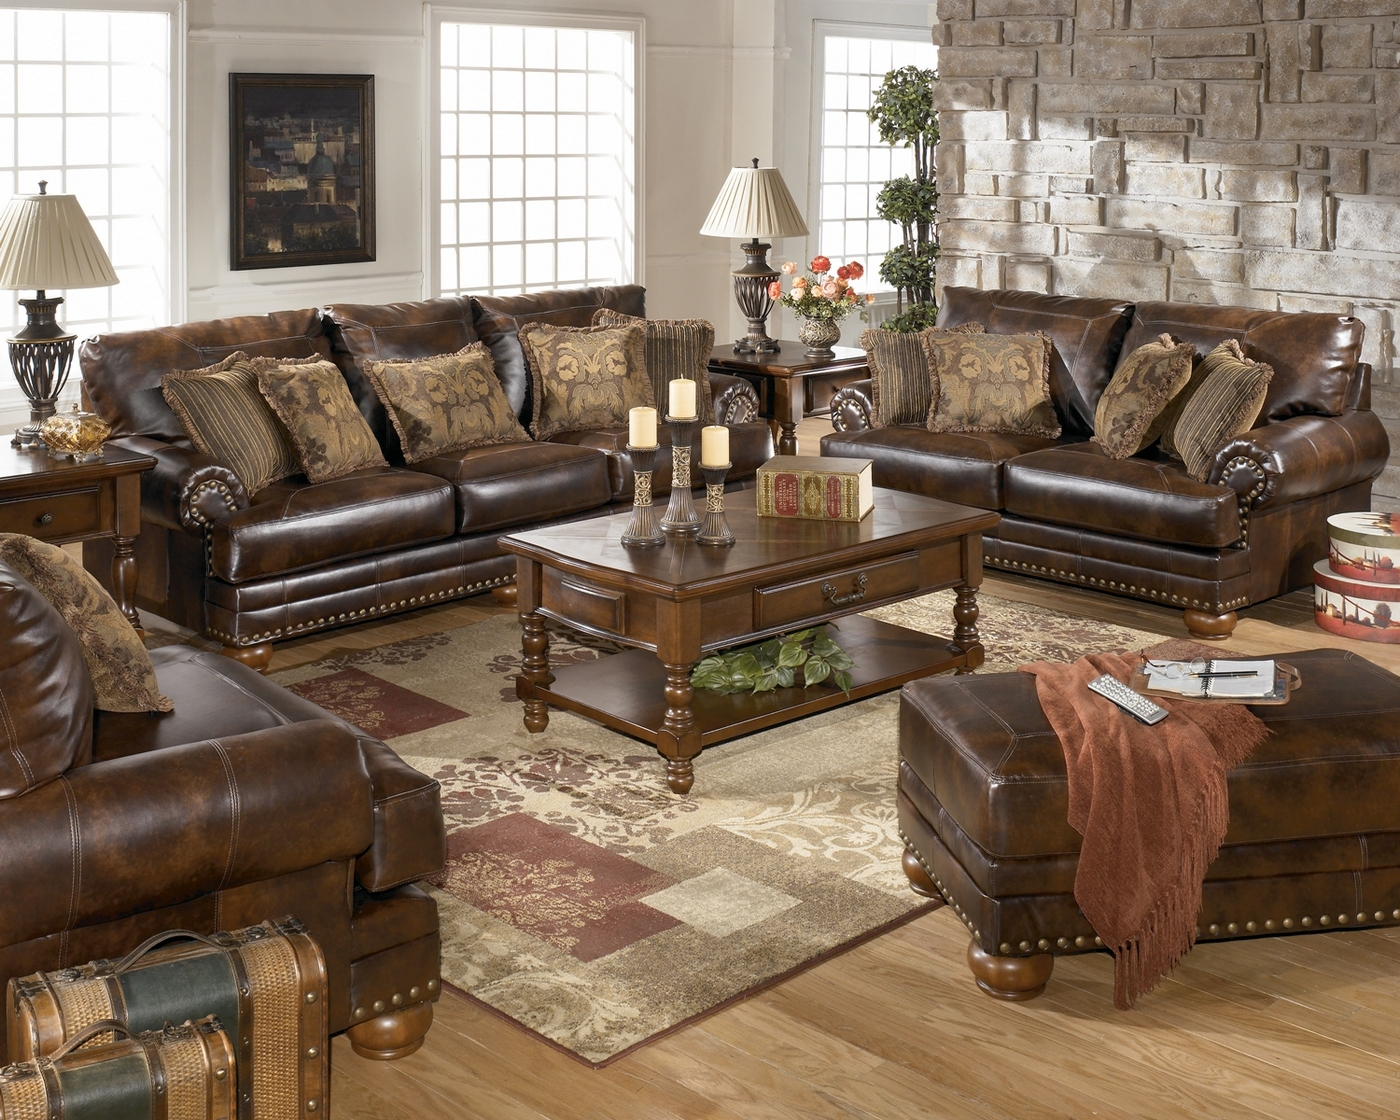 Leather Living Antique Leather Sofa Traditional Living Room Furniture Set